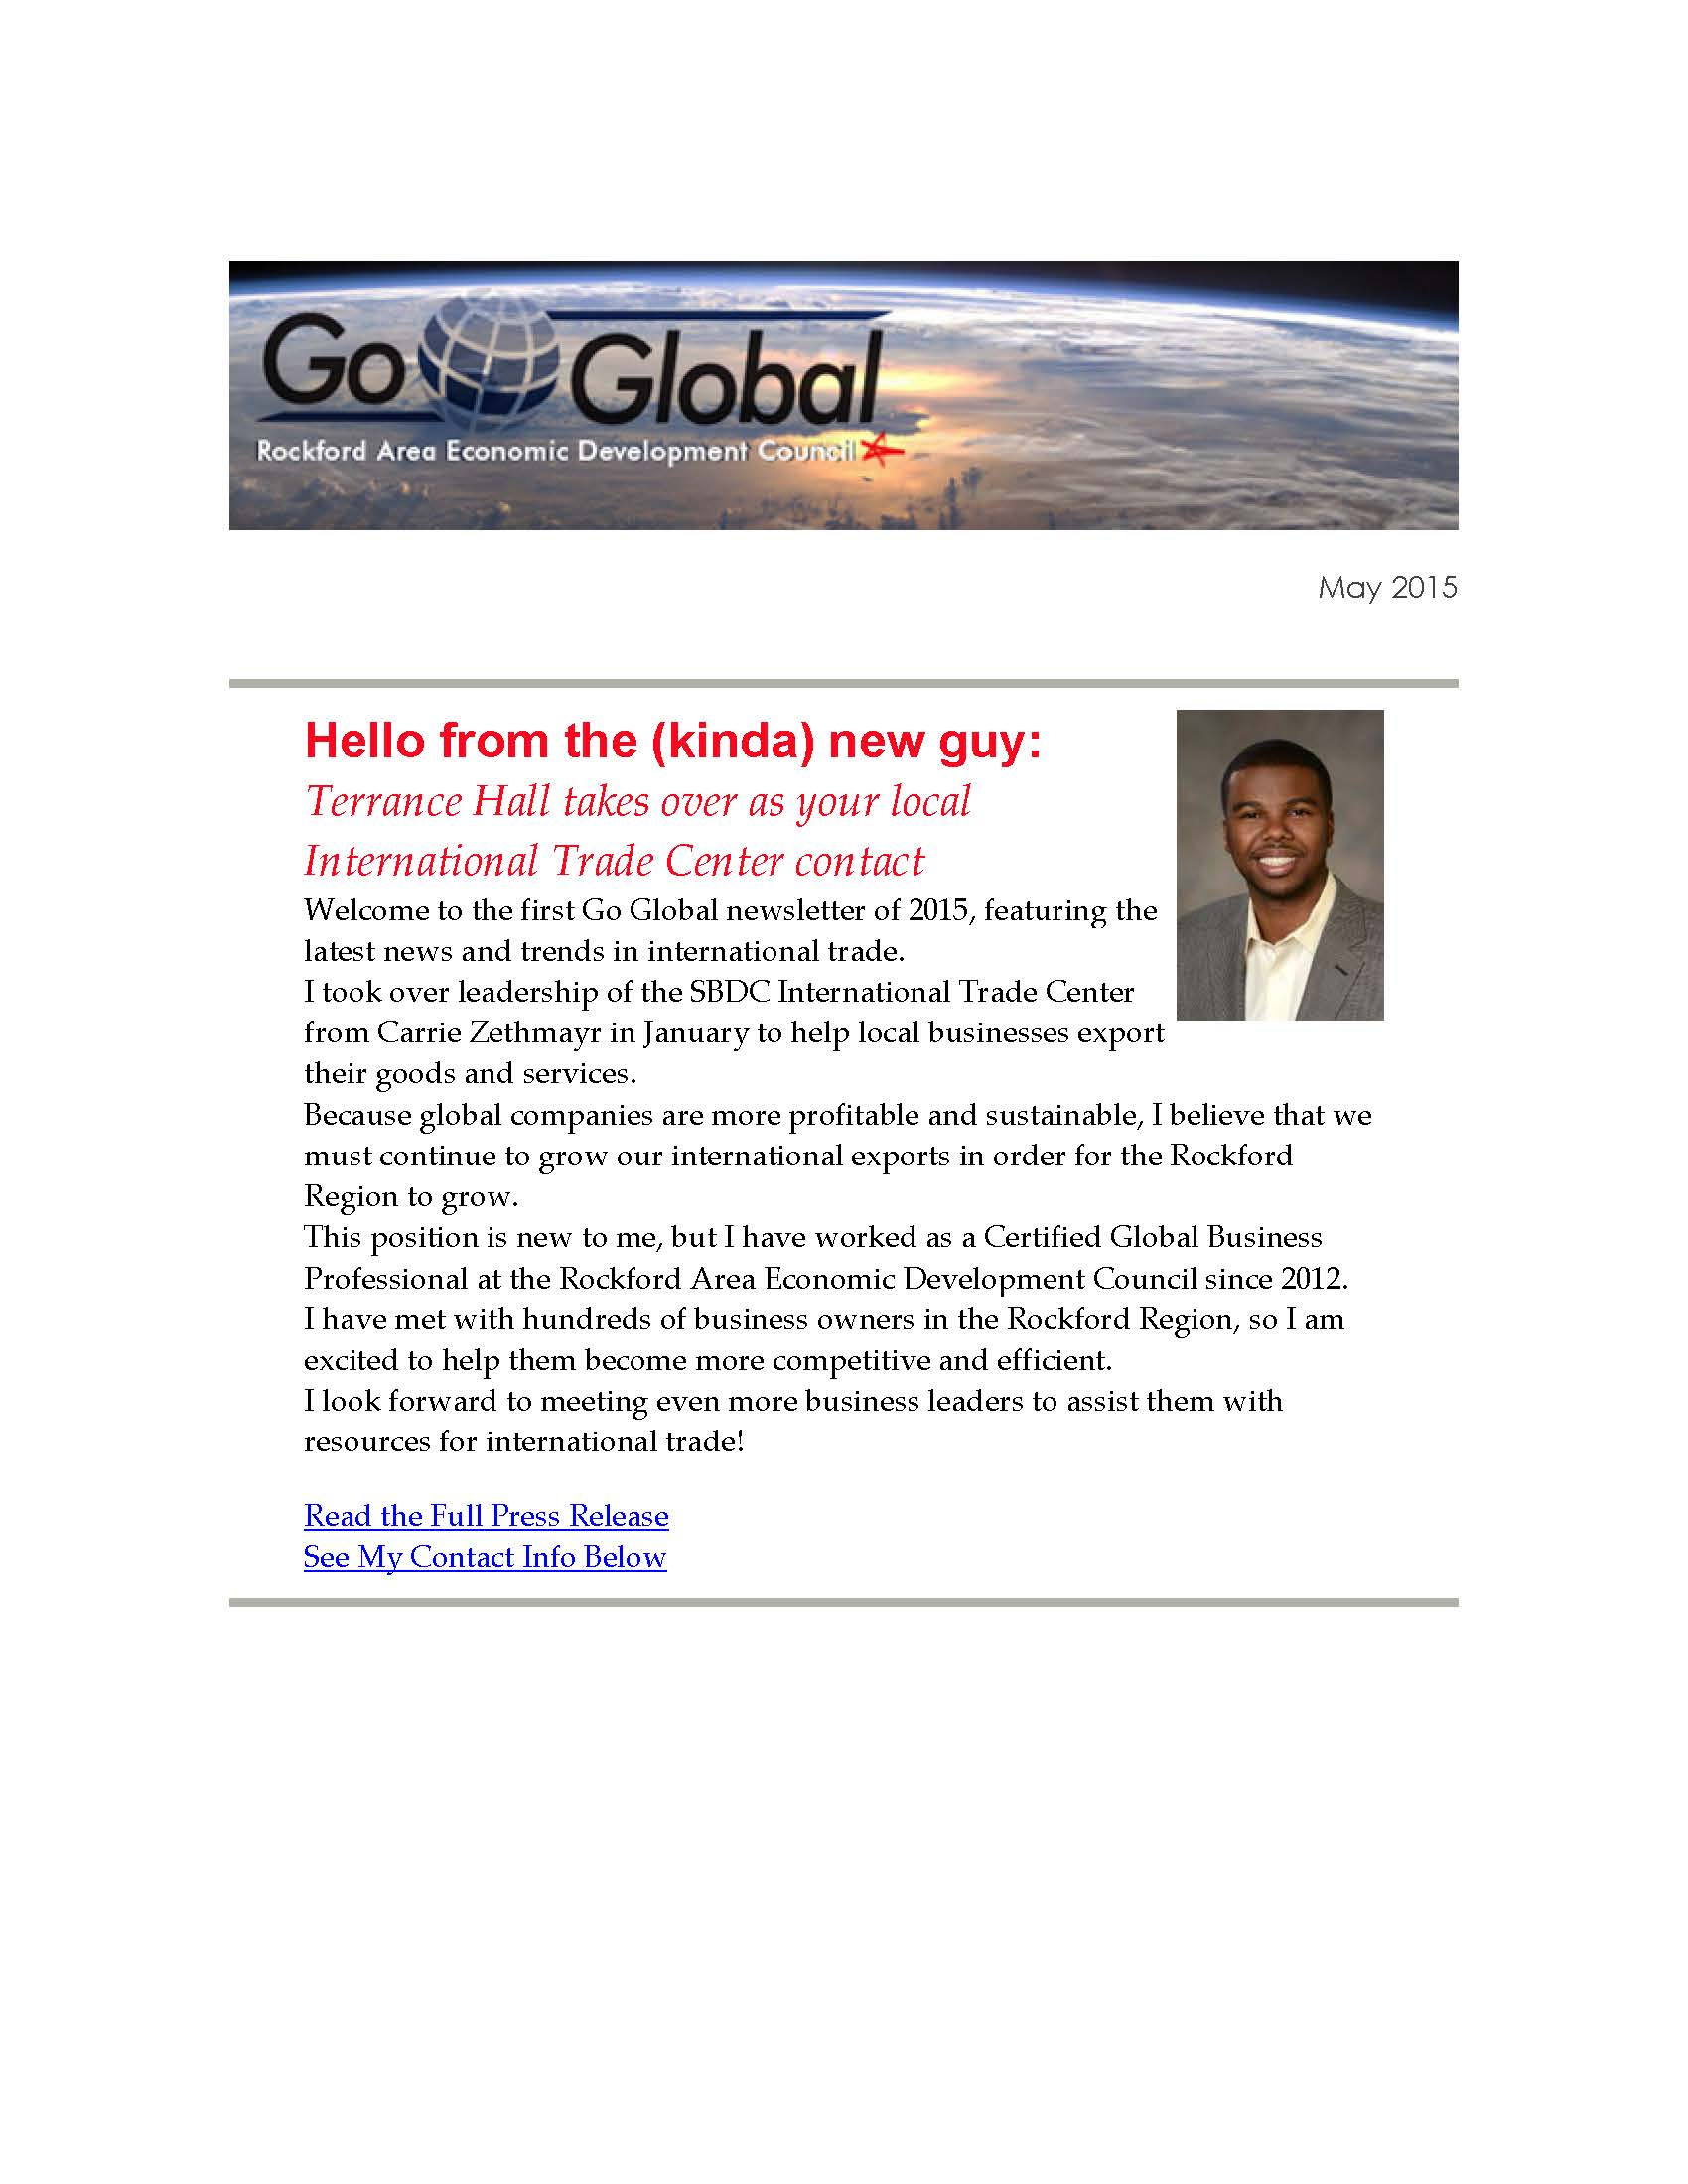 Spring Go Global Newsletter: Paris Air Show is just a month away